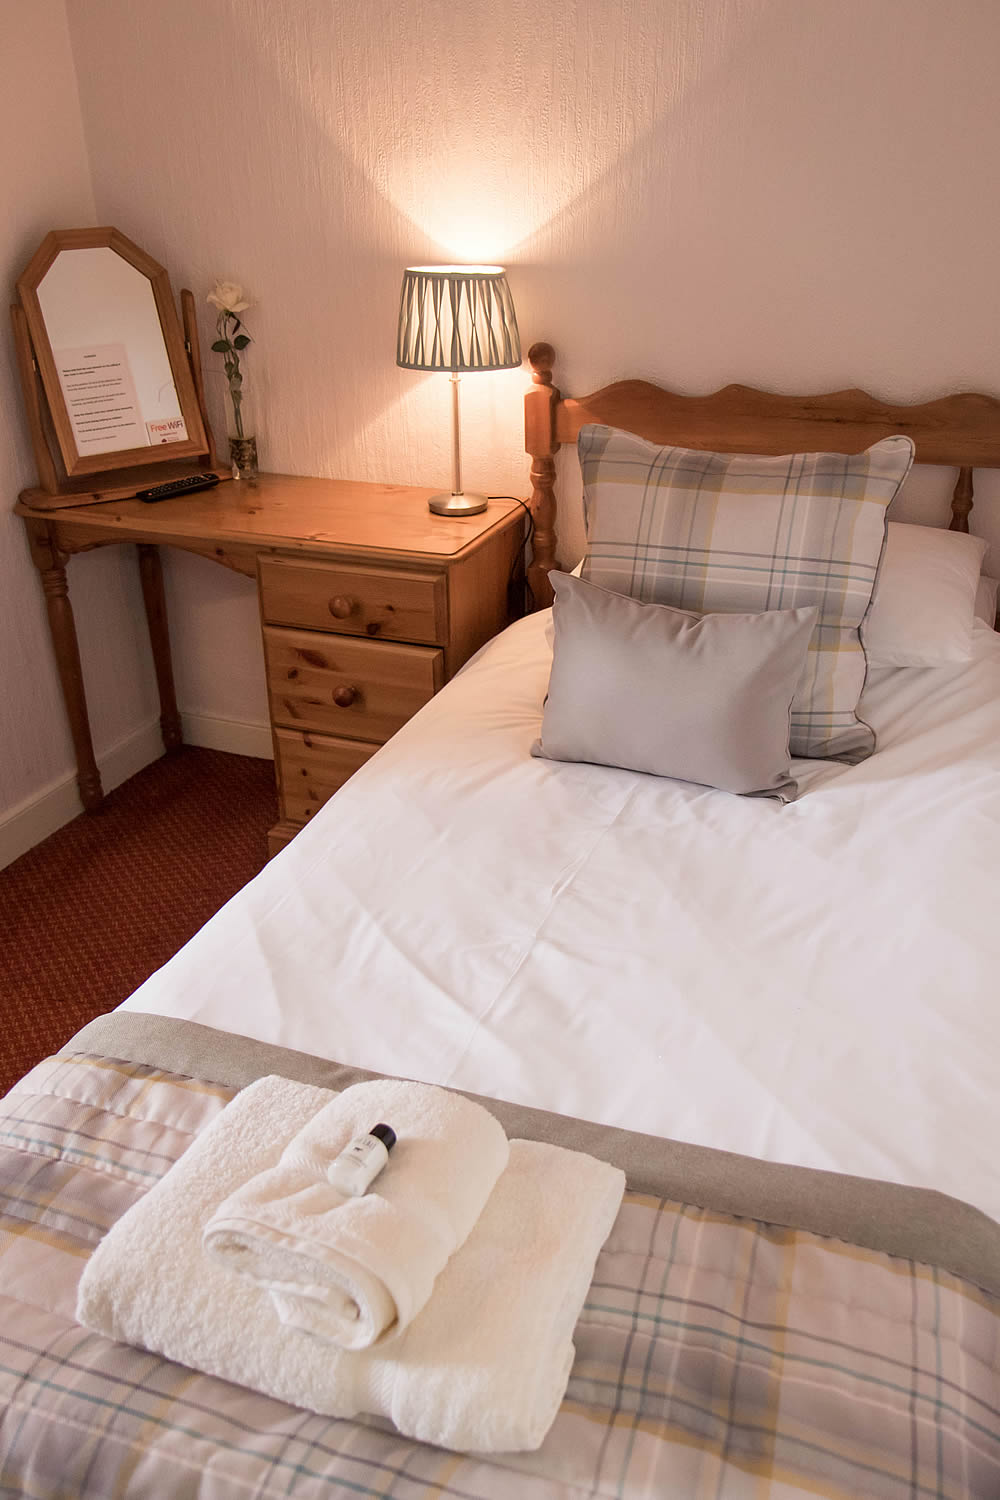 Bedroom accommodation at Templehall Hotel, Morebattle, Scottish Borders